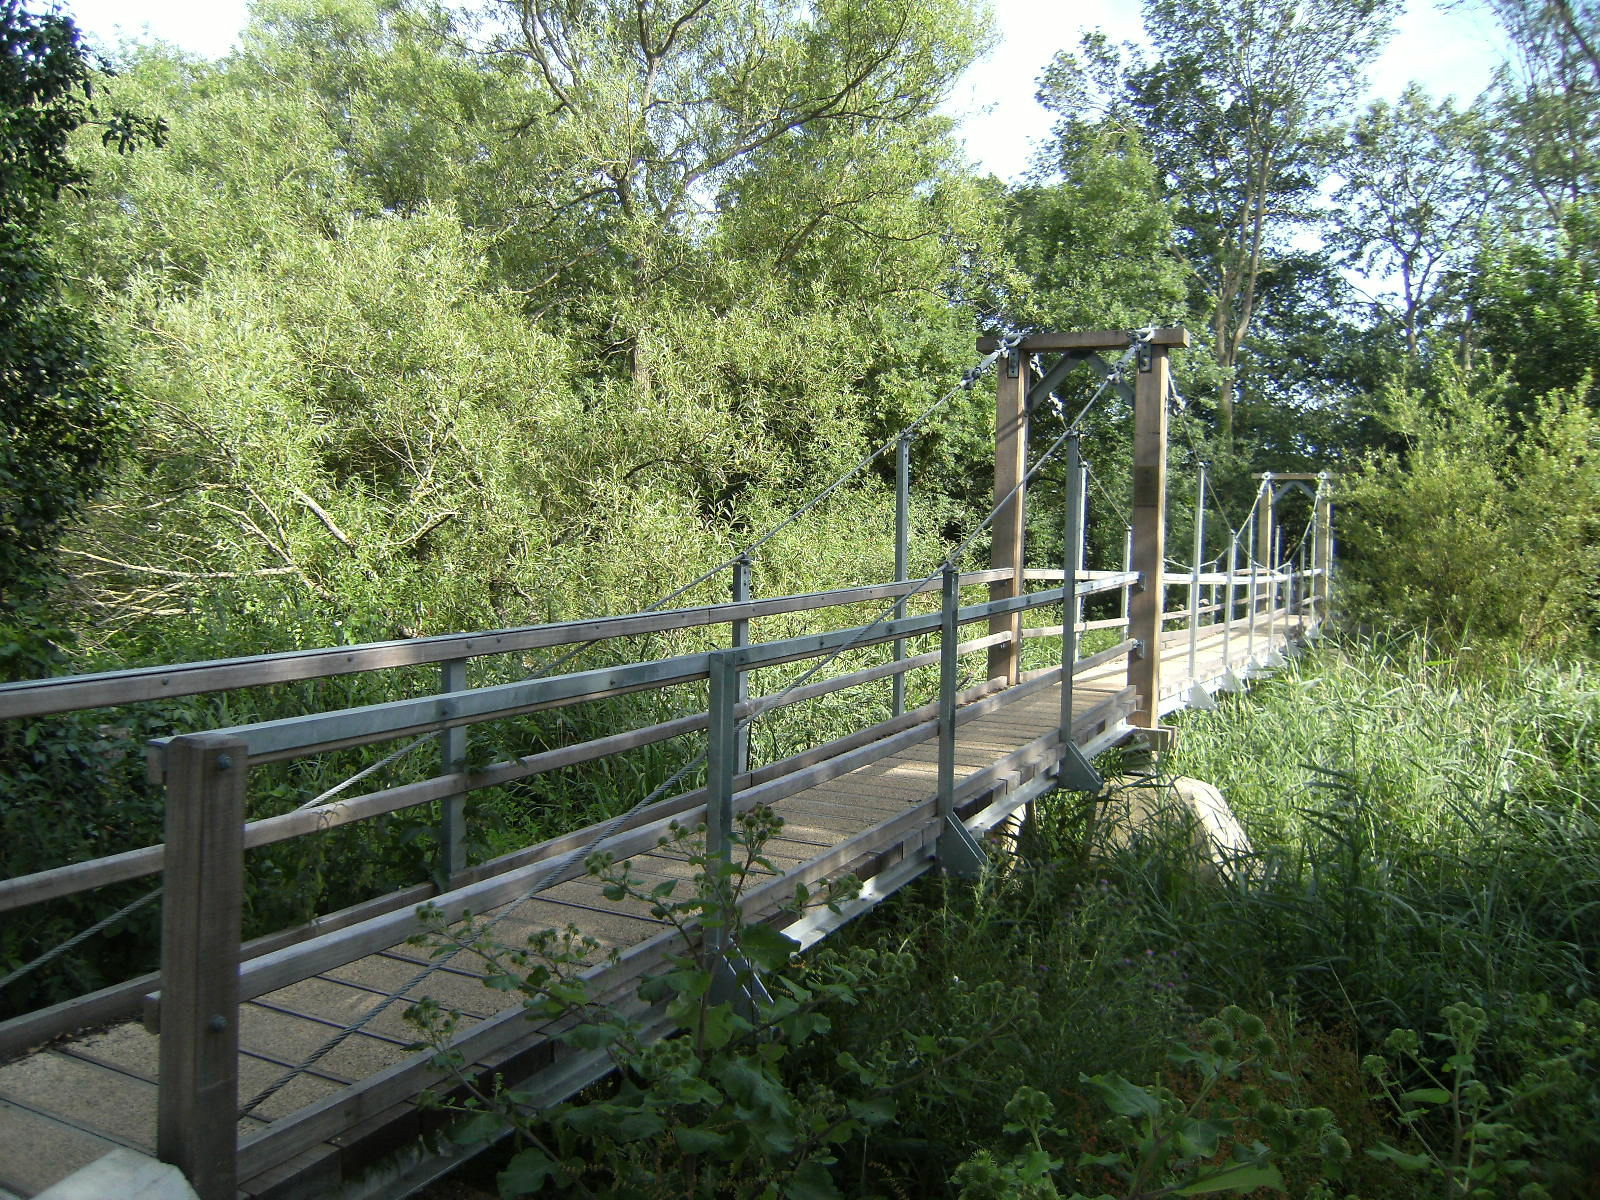 1007190178 New footbridge near North Stoke